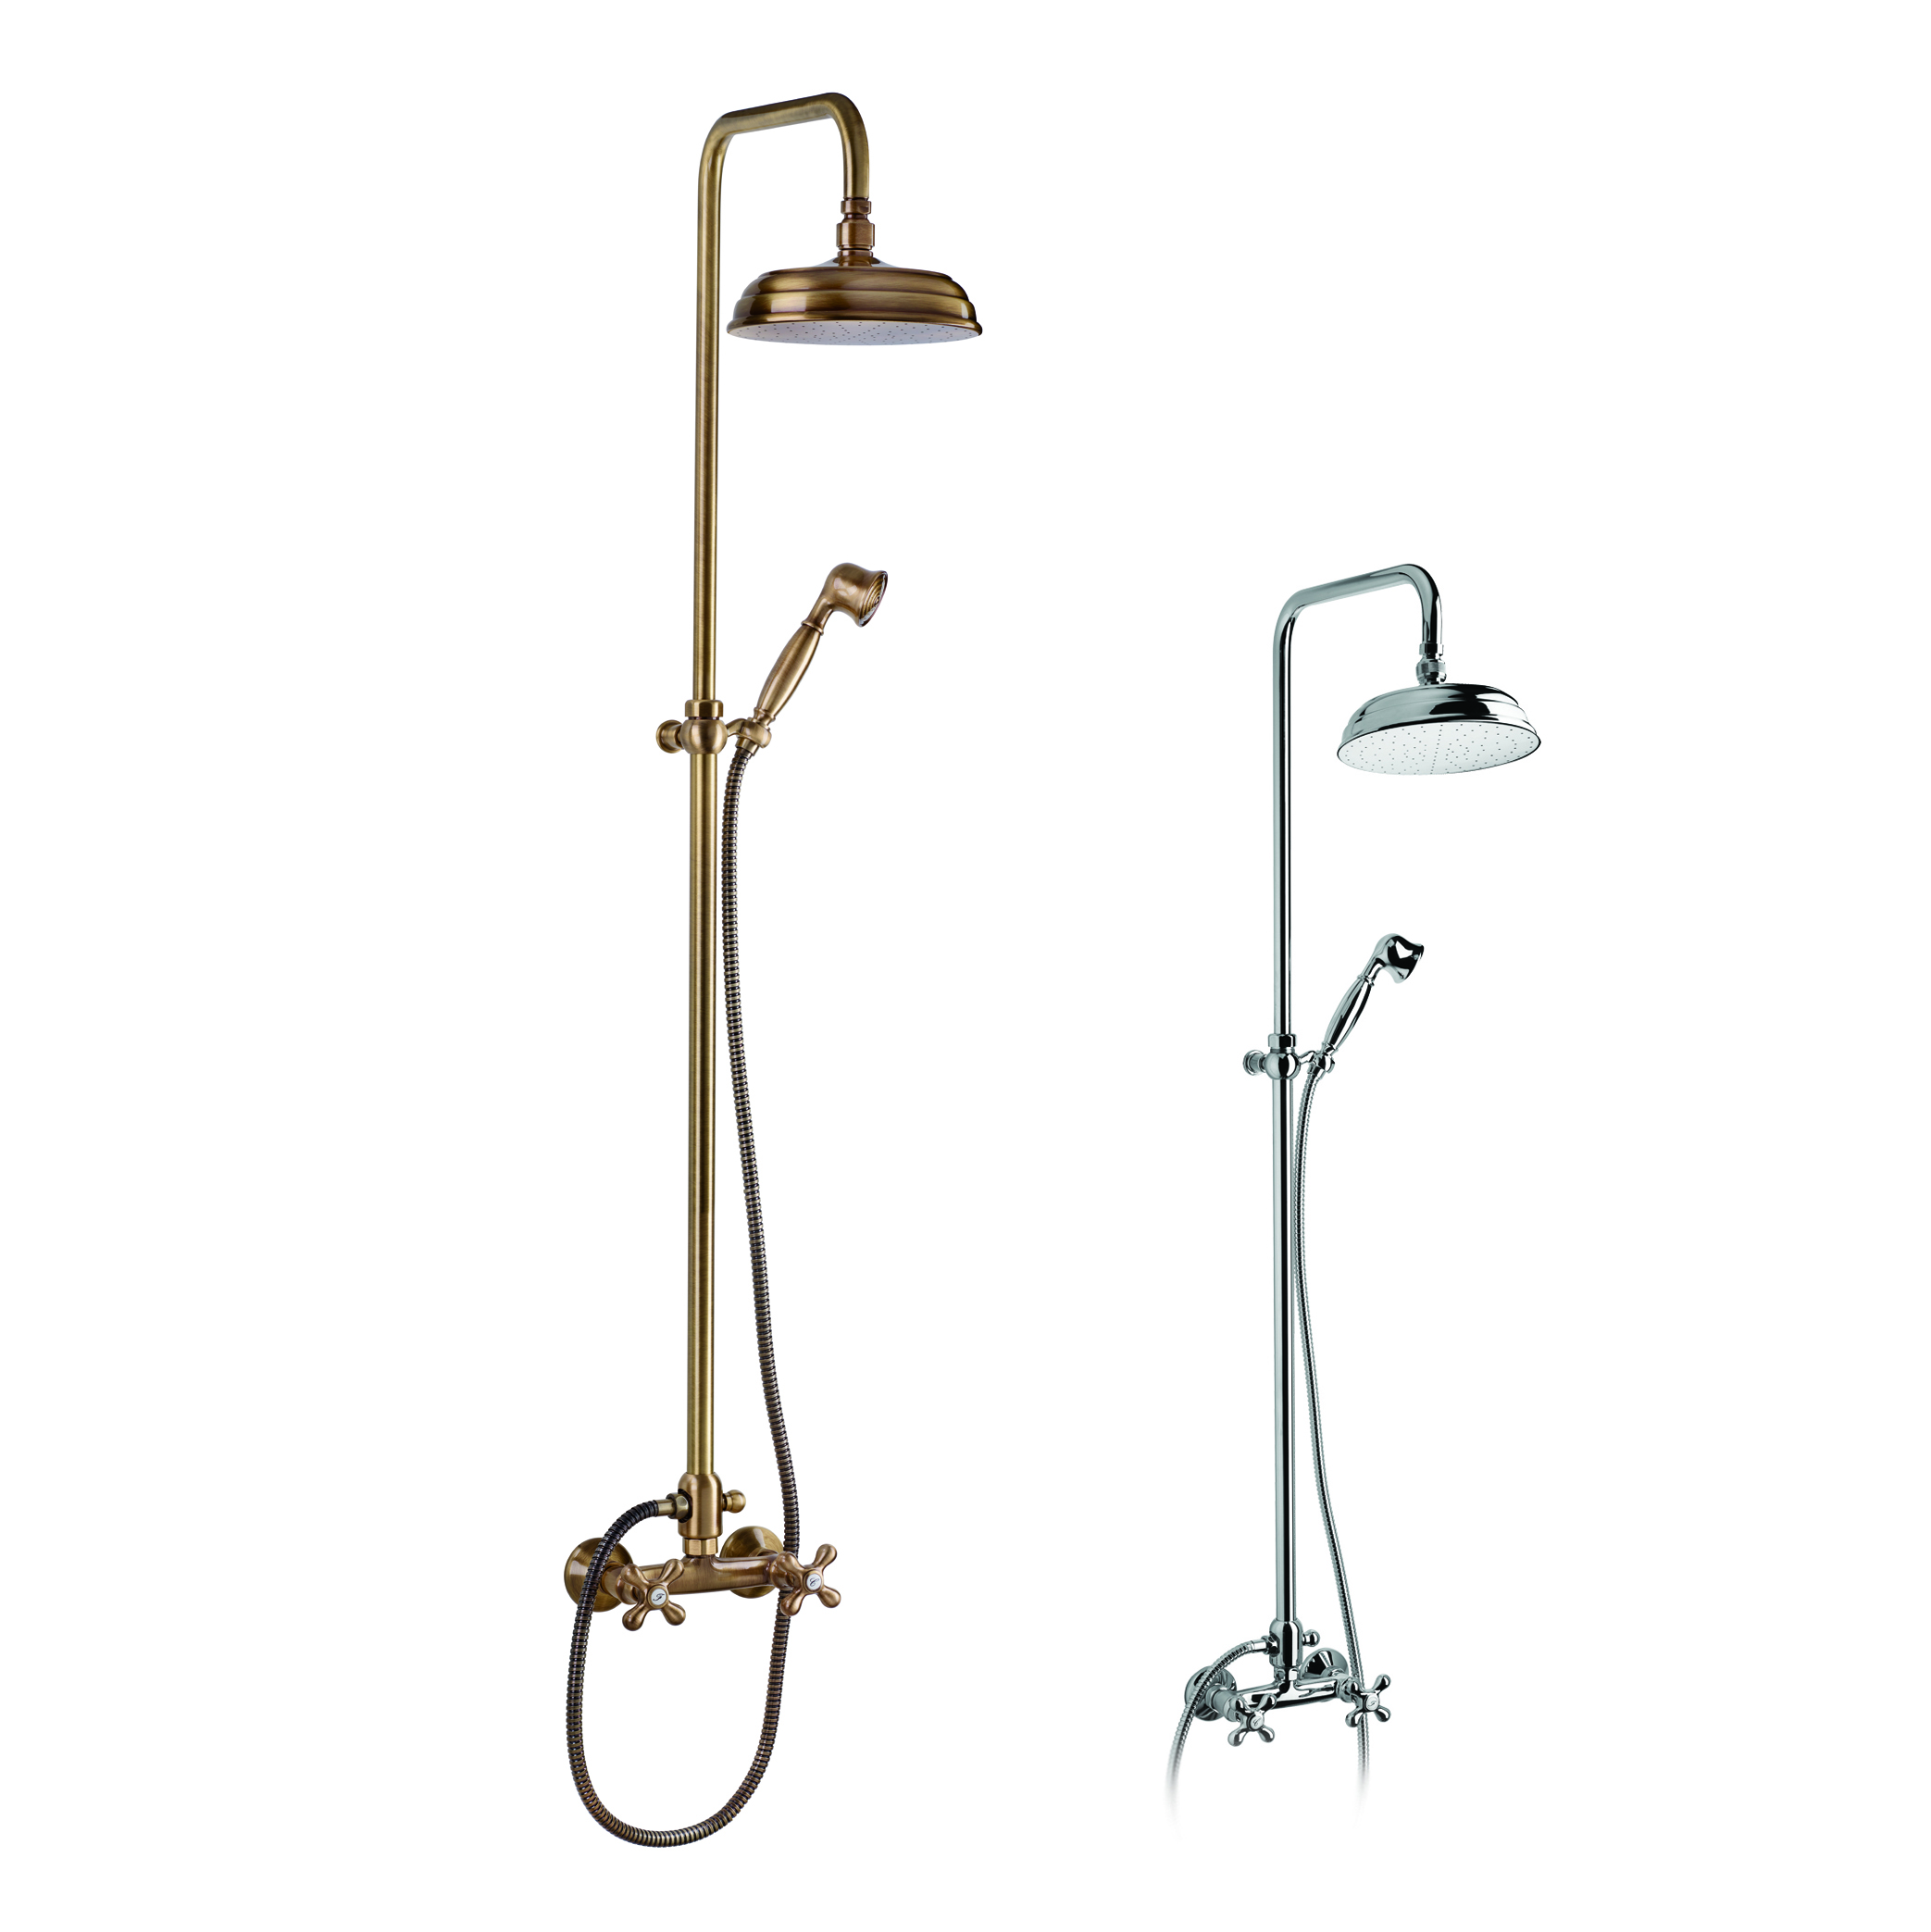 Telescopic shower column with shower group